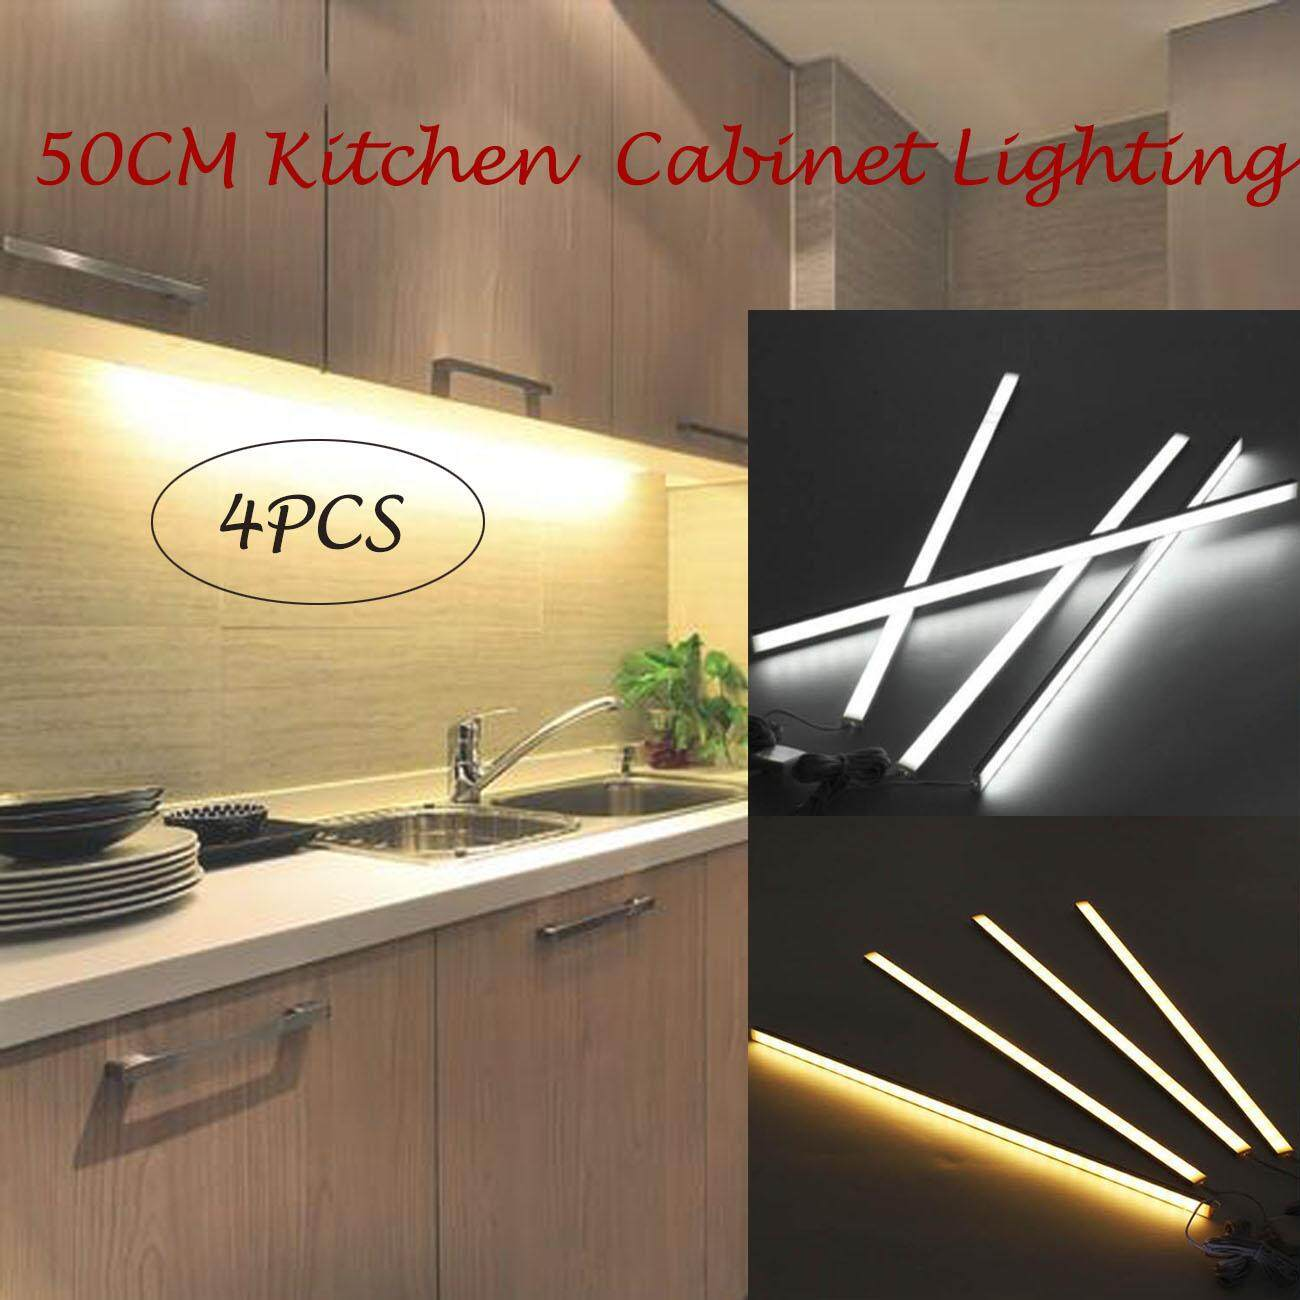 Under Cabinet Counter Lighting Led